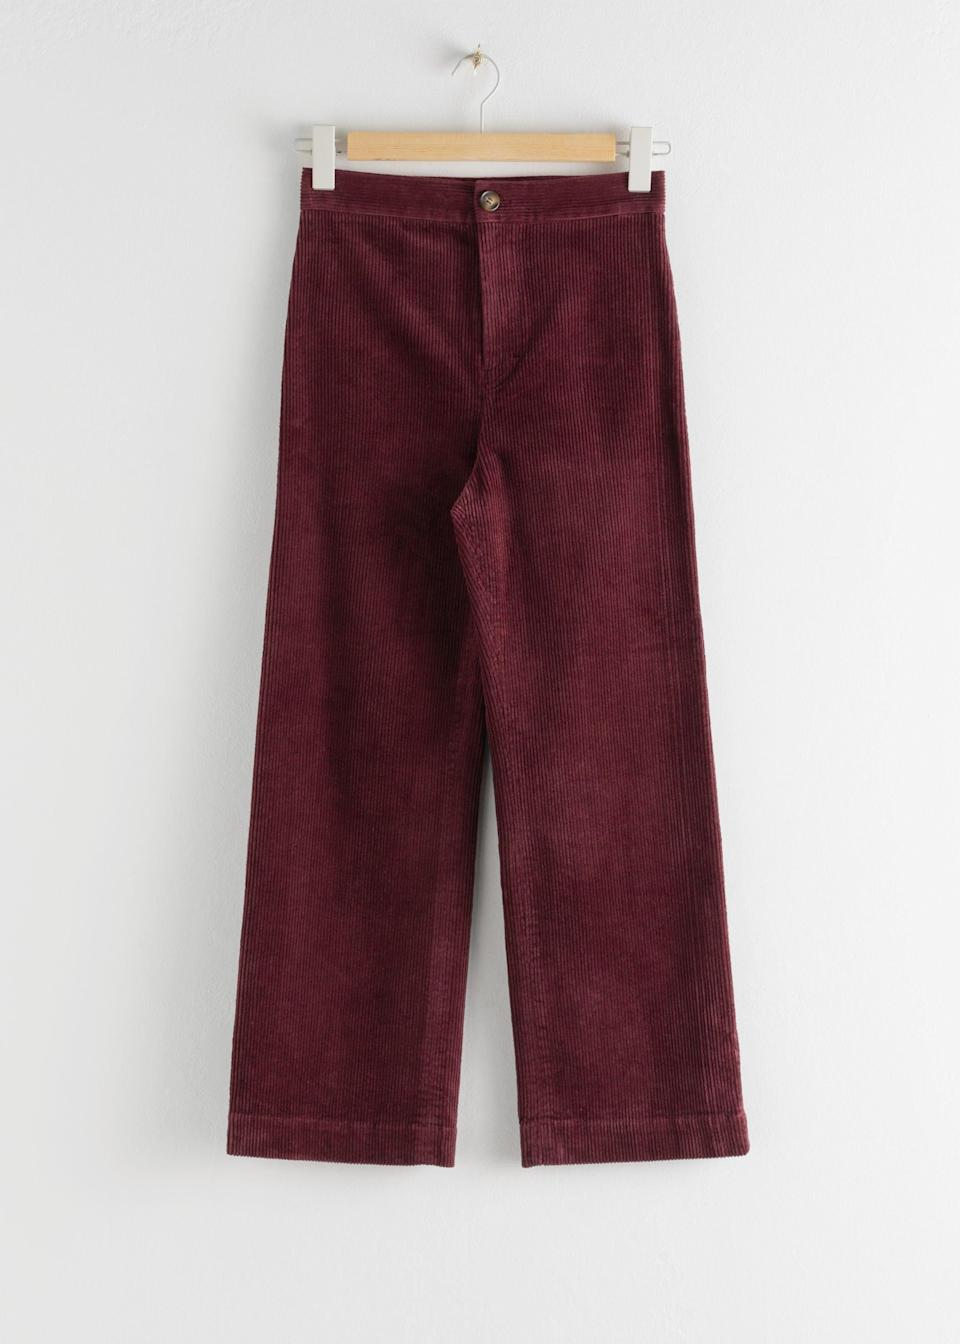 """<br><br><strong>& Other Stories</strong> Relaxed Corduroy Trousers, $, available at <a href=""""https://www.stories.com/en_gbp/clothing/trousers/corduroy-trousers/product.relaxed-corduroy-trousers-red.0805273001.html"""" rel=""""nofollow noopener"""" target=""""_blank"""" data-ylk=""""slk:& Other Stories"""" class=""""link rapid-noclick-resp"""">& Other Stories</a>"""